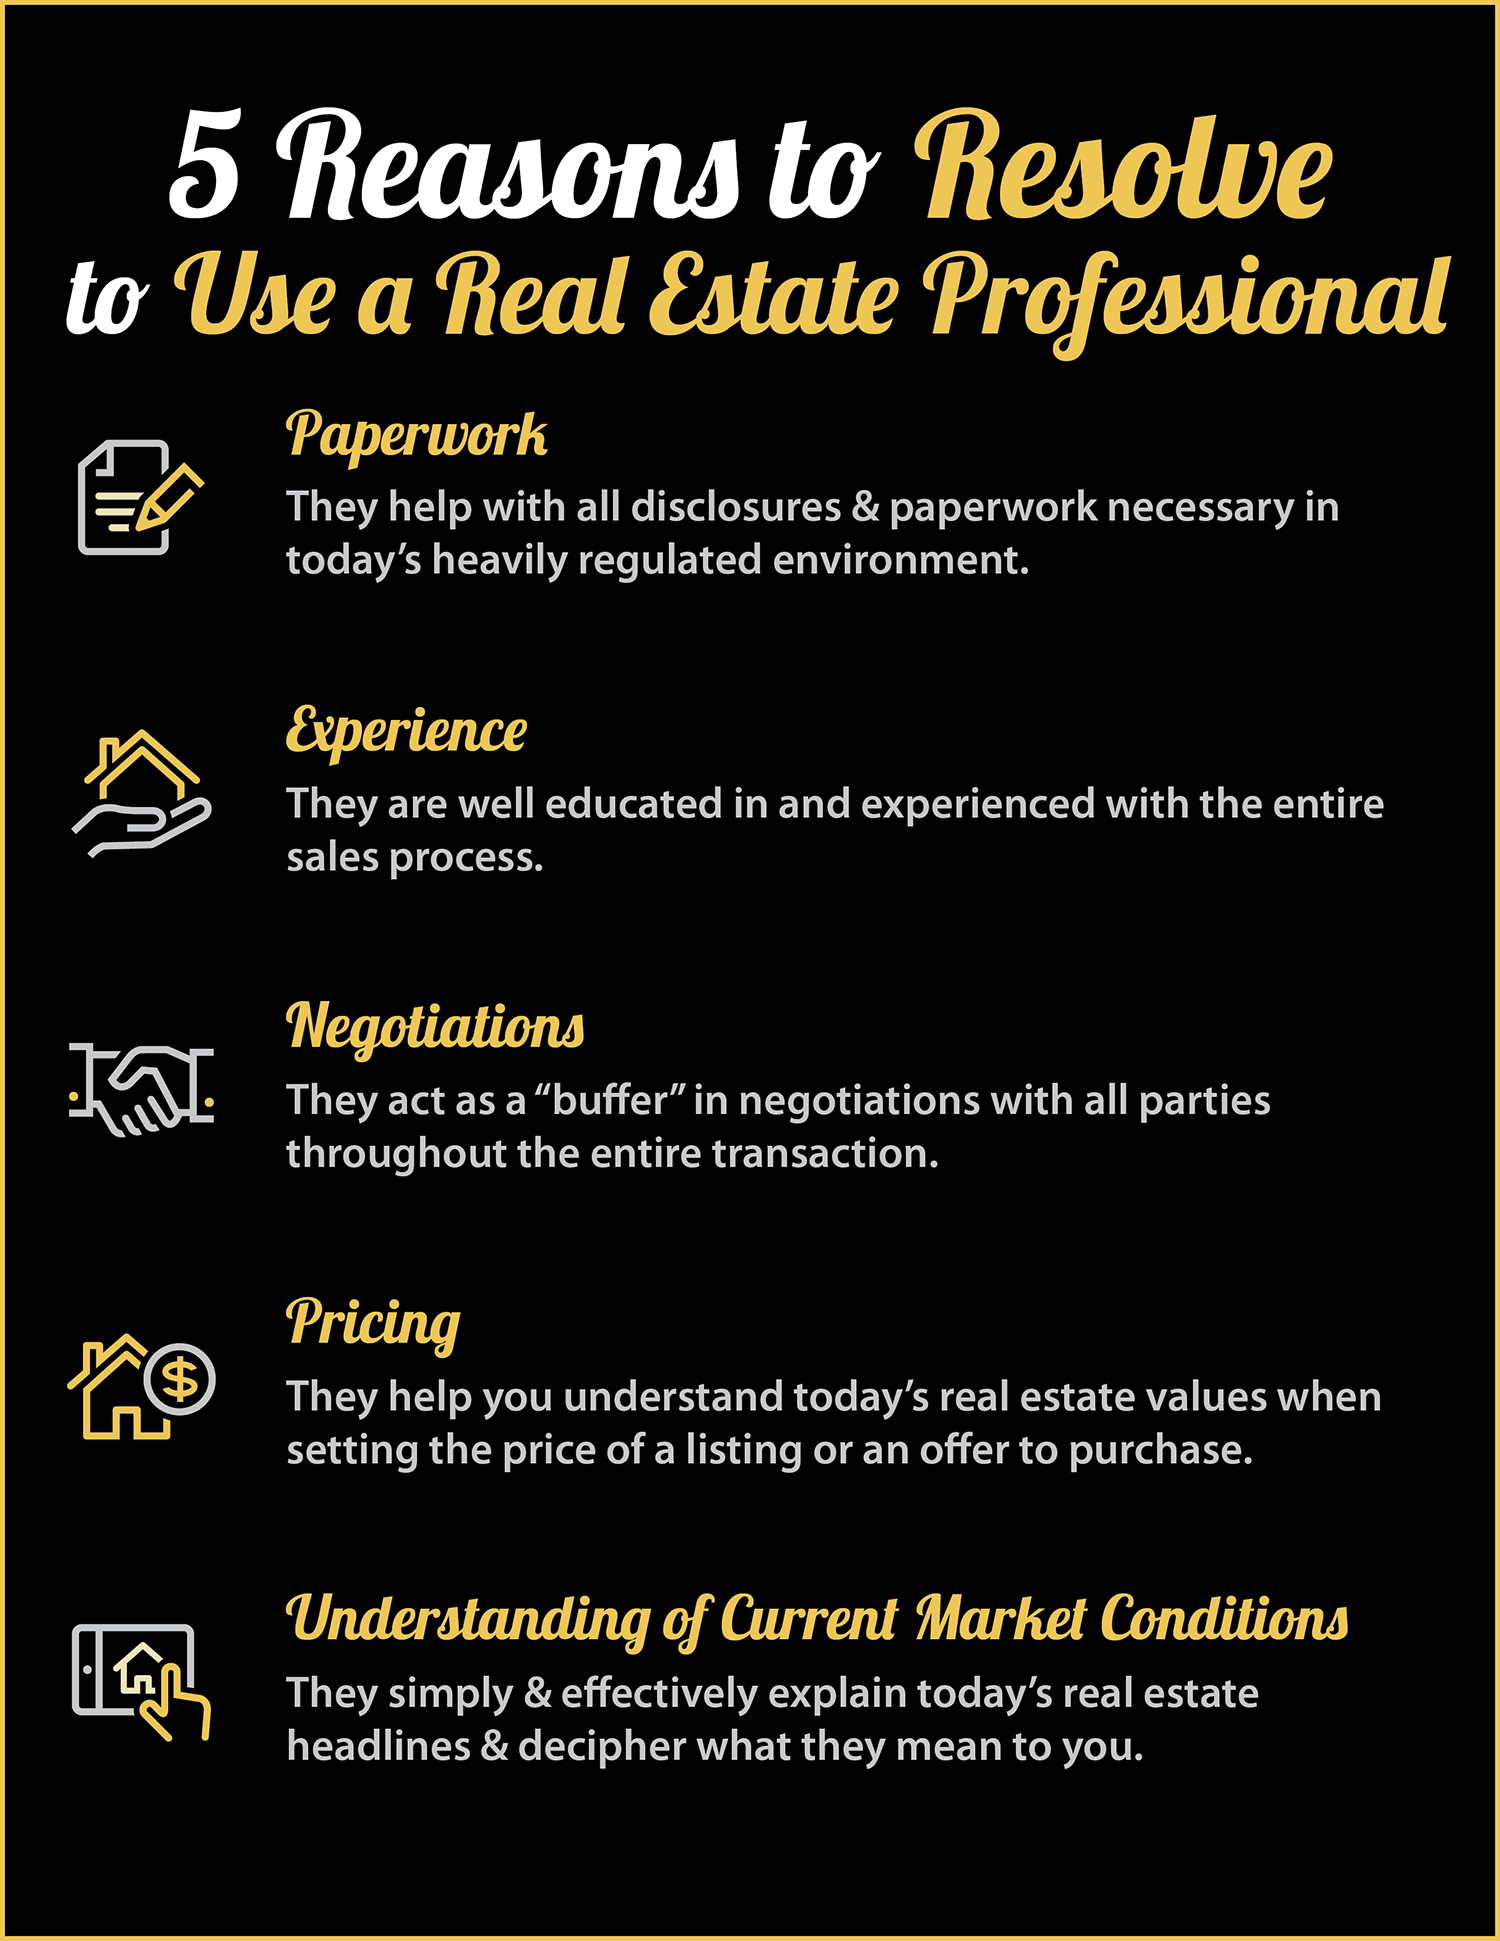 http://www.simplifyingthemarket.com/en/2016/12/30/5-reasons-to-resolve-to-hire-a-real-estate-professional-infographic/?a=291925-d1c52fca906b81d942ceefa7aa75ee02